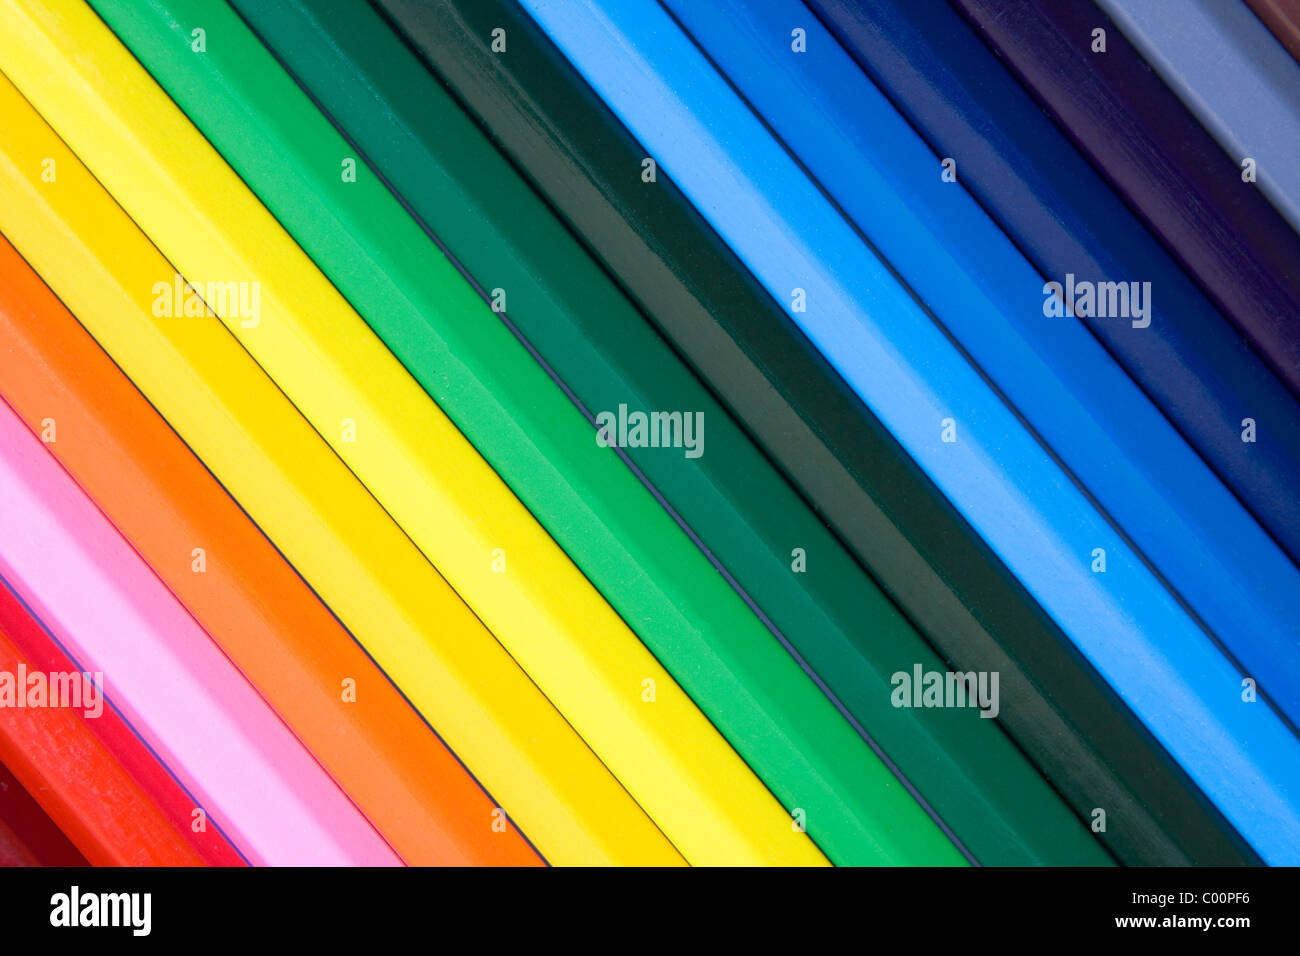 Colored Pencils Background - Stock Image